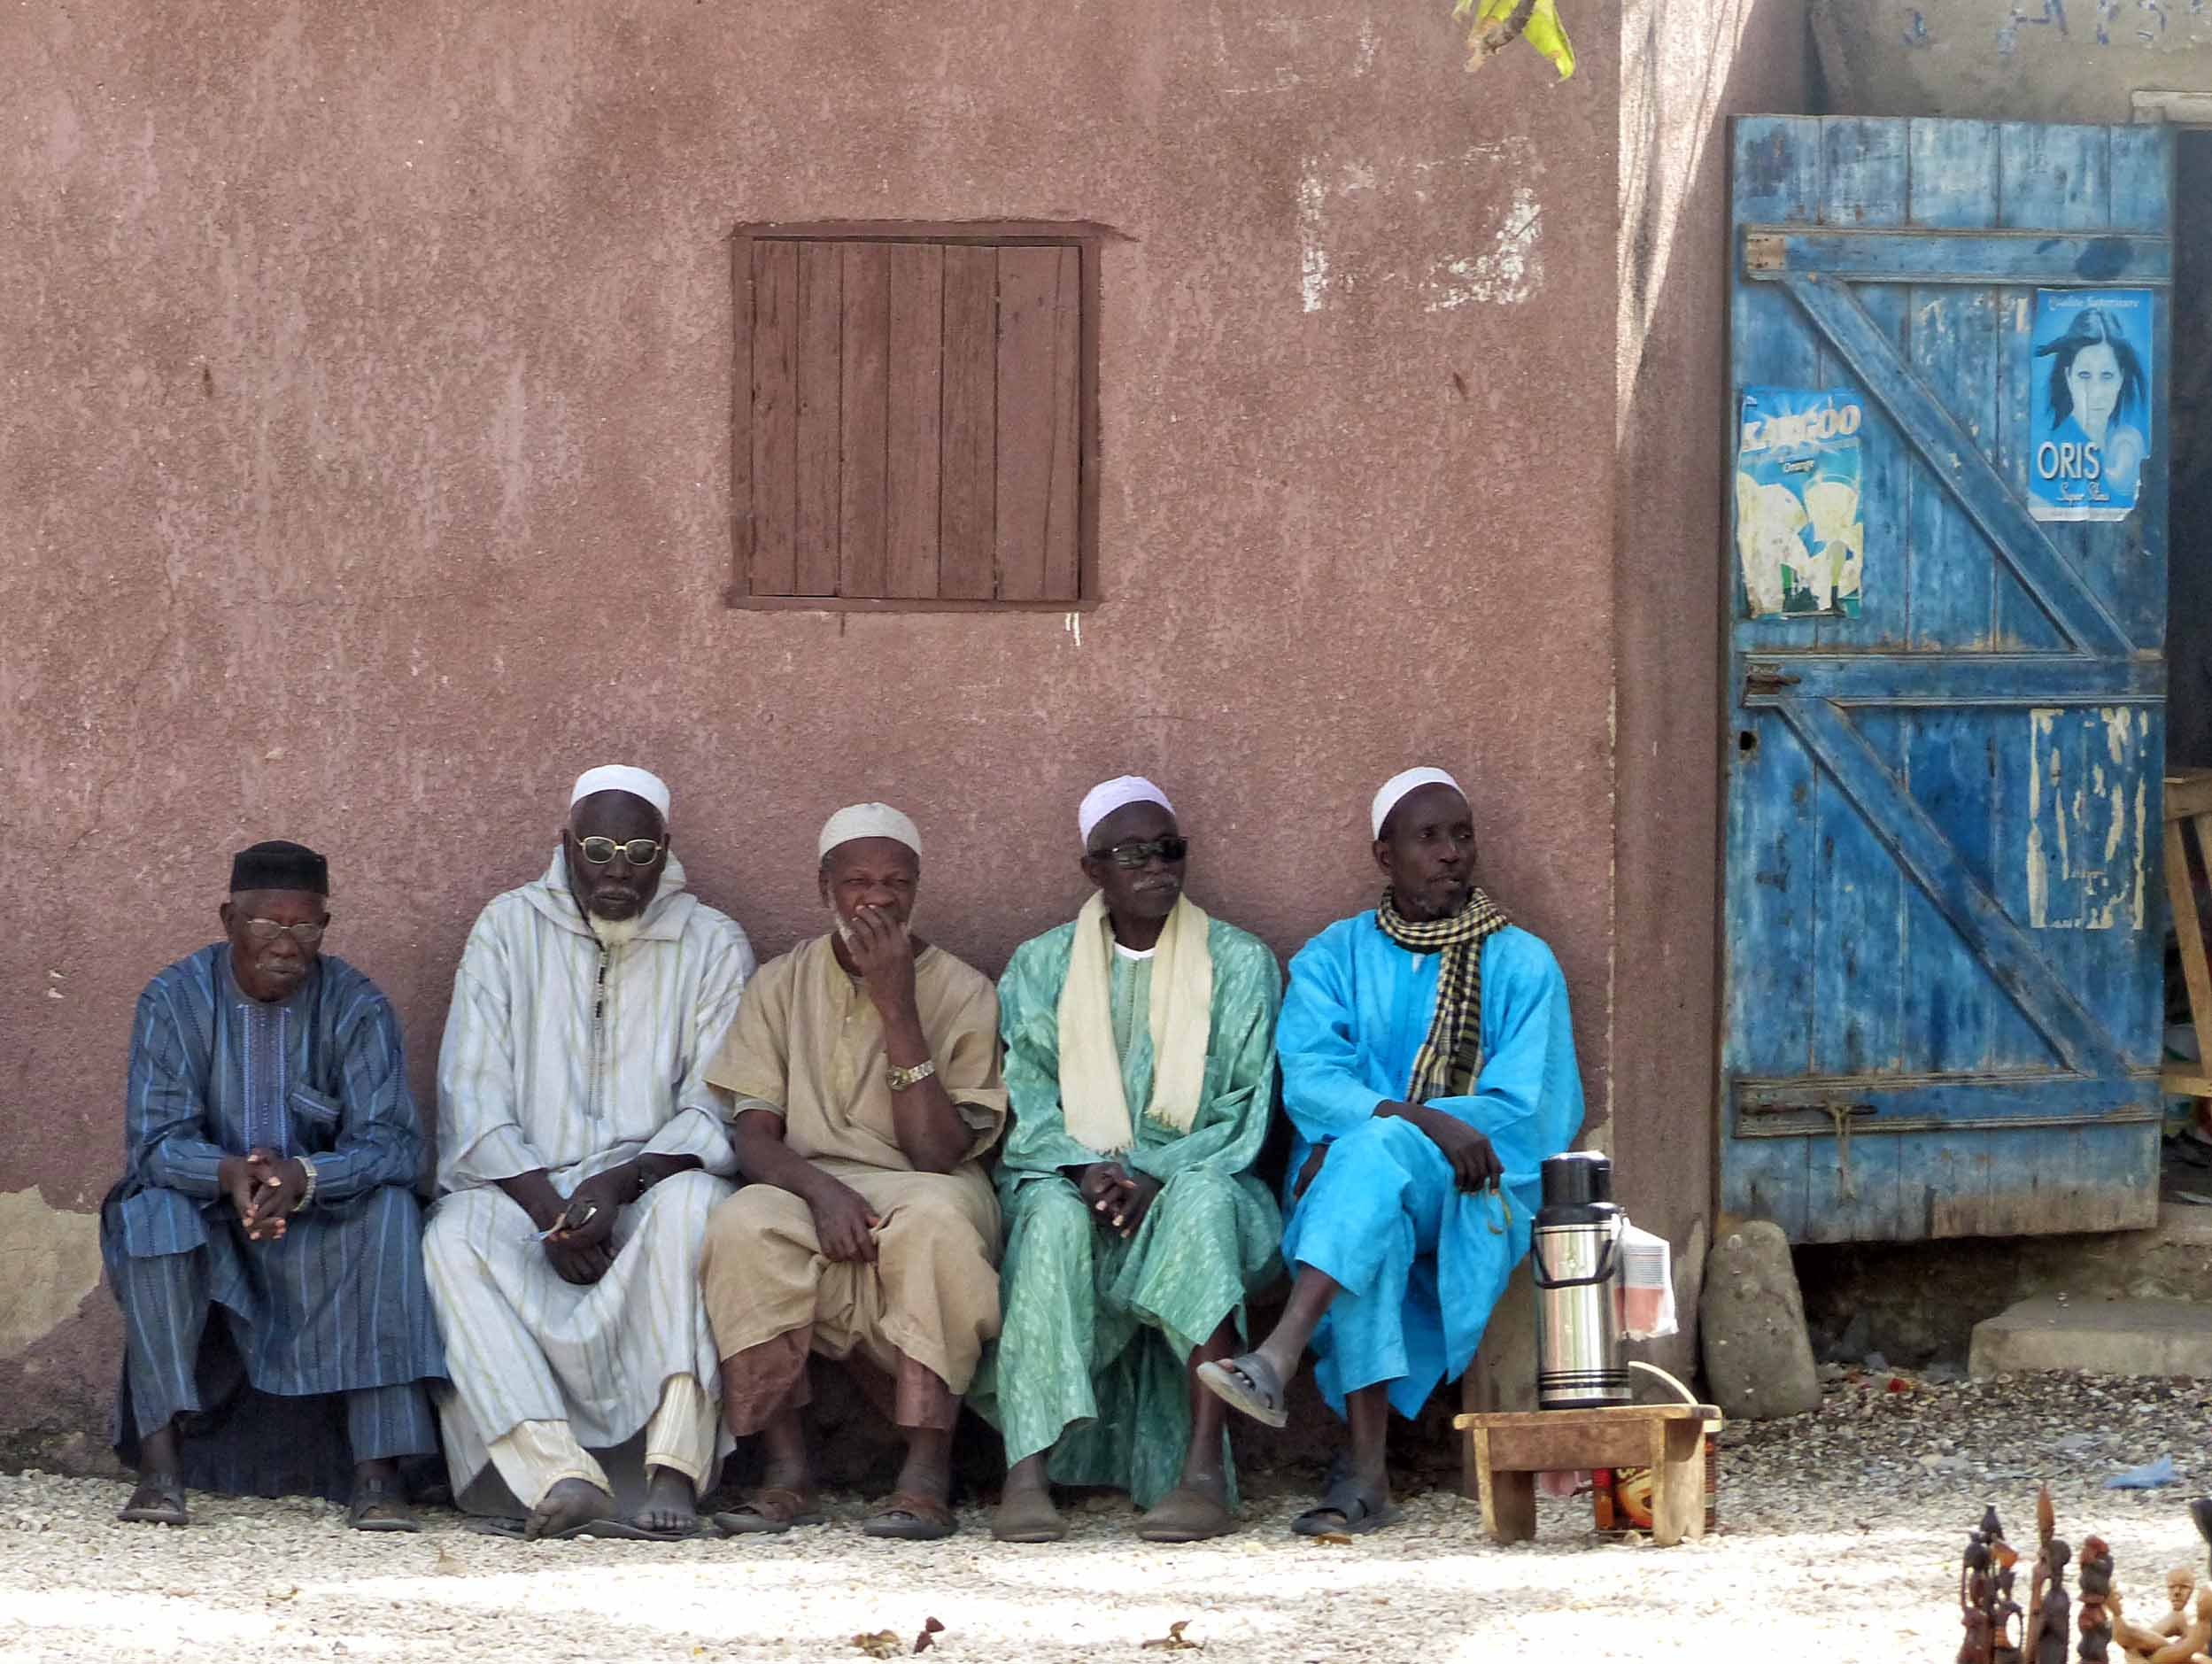 Five men in African dress sitting on a bench